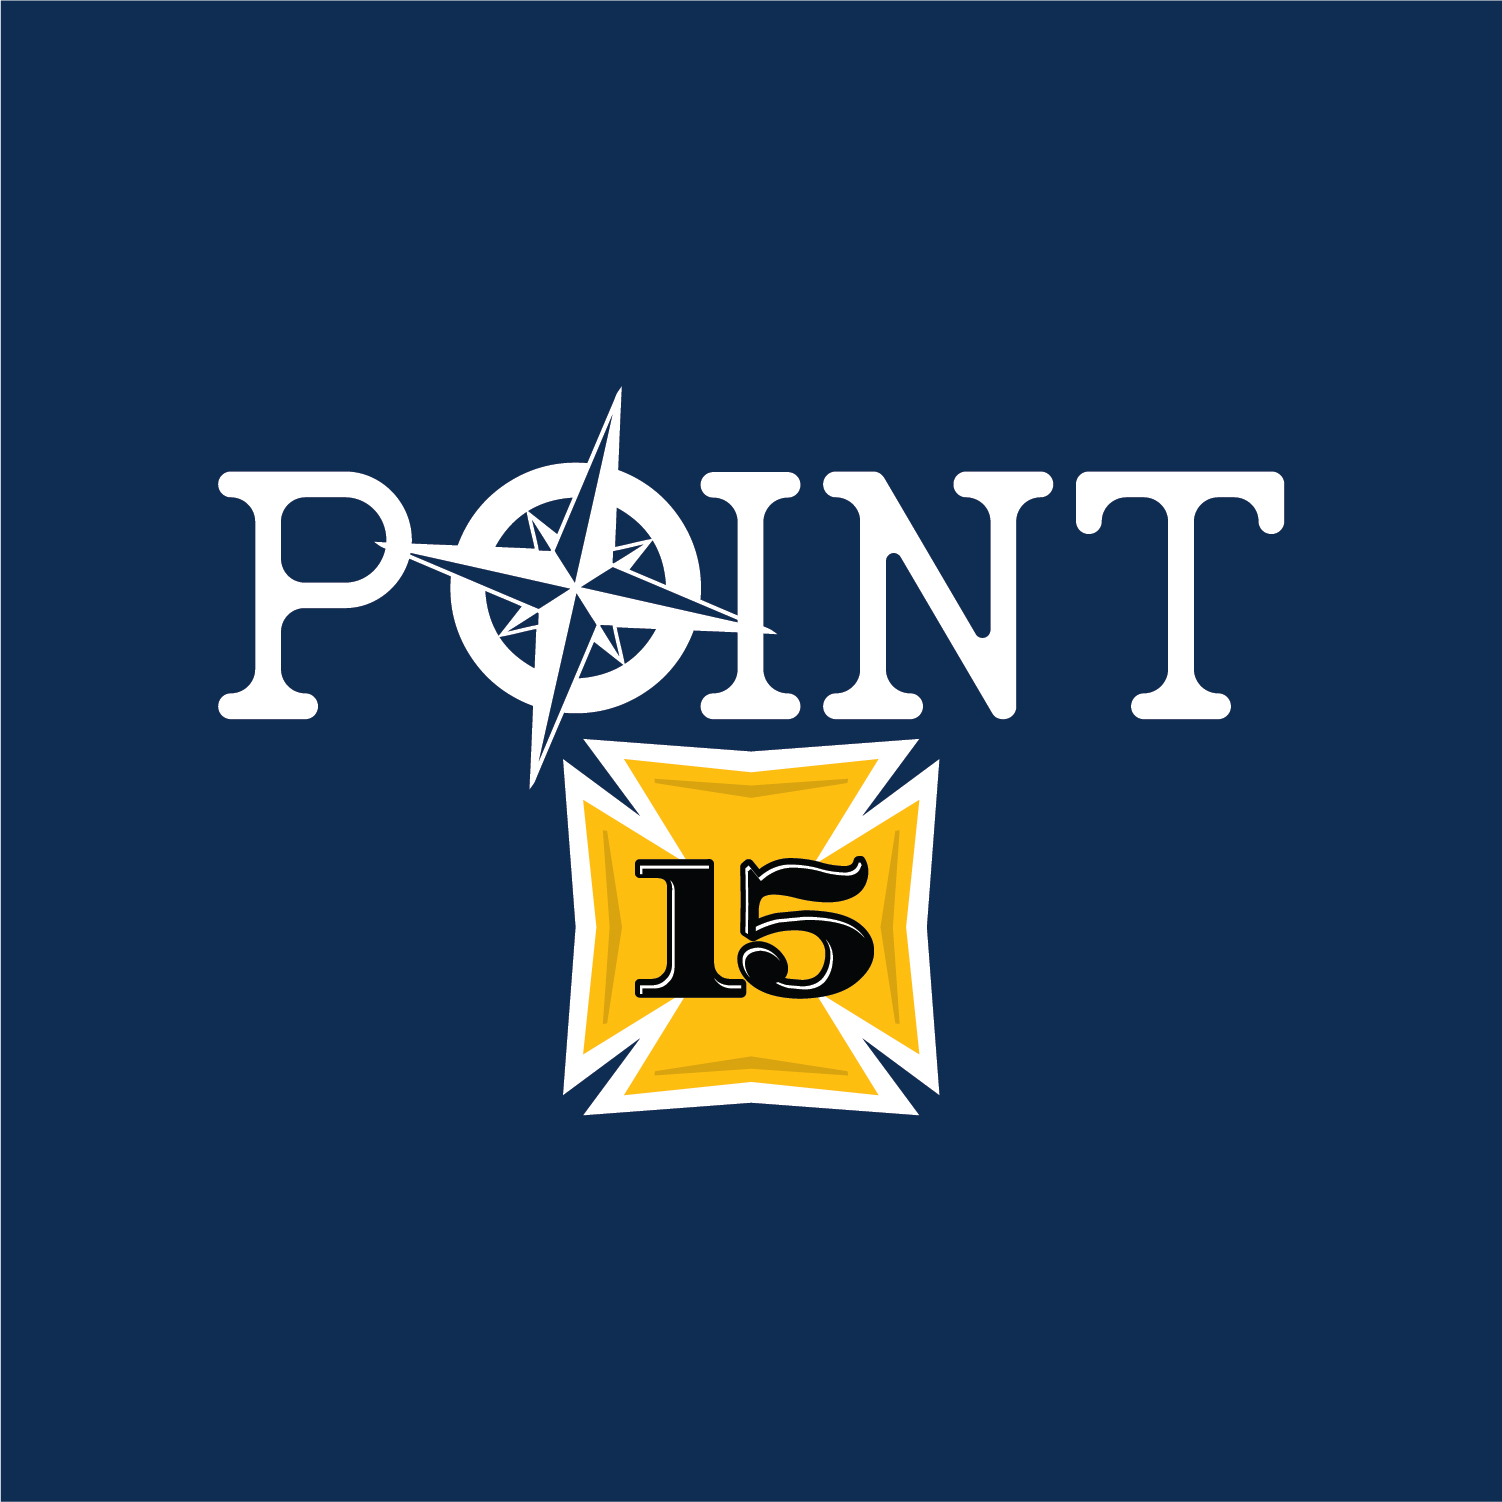 Engine 15 And Milford Point Collaborate On Point 15 Ipa photo